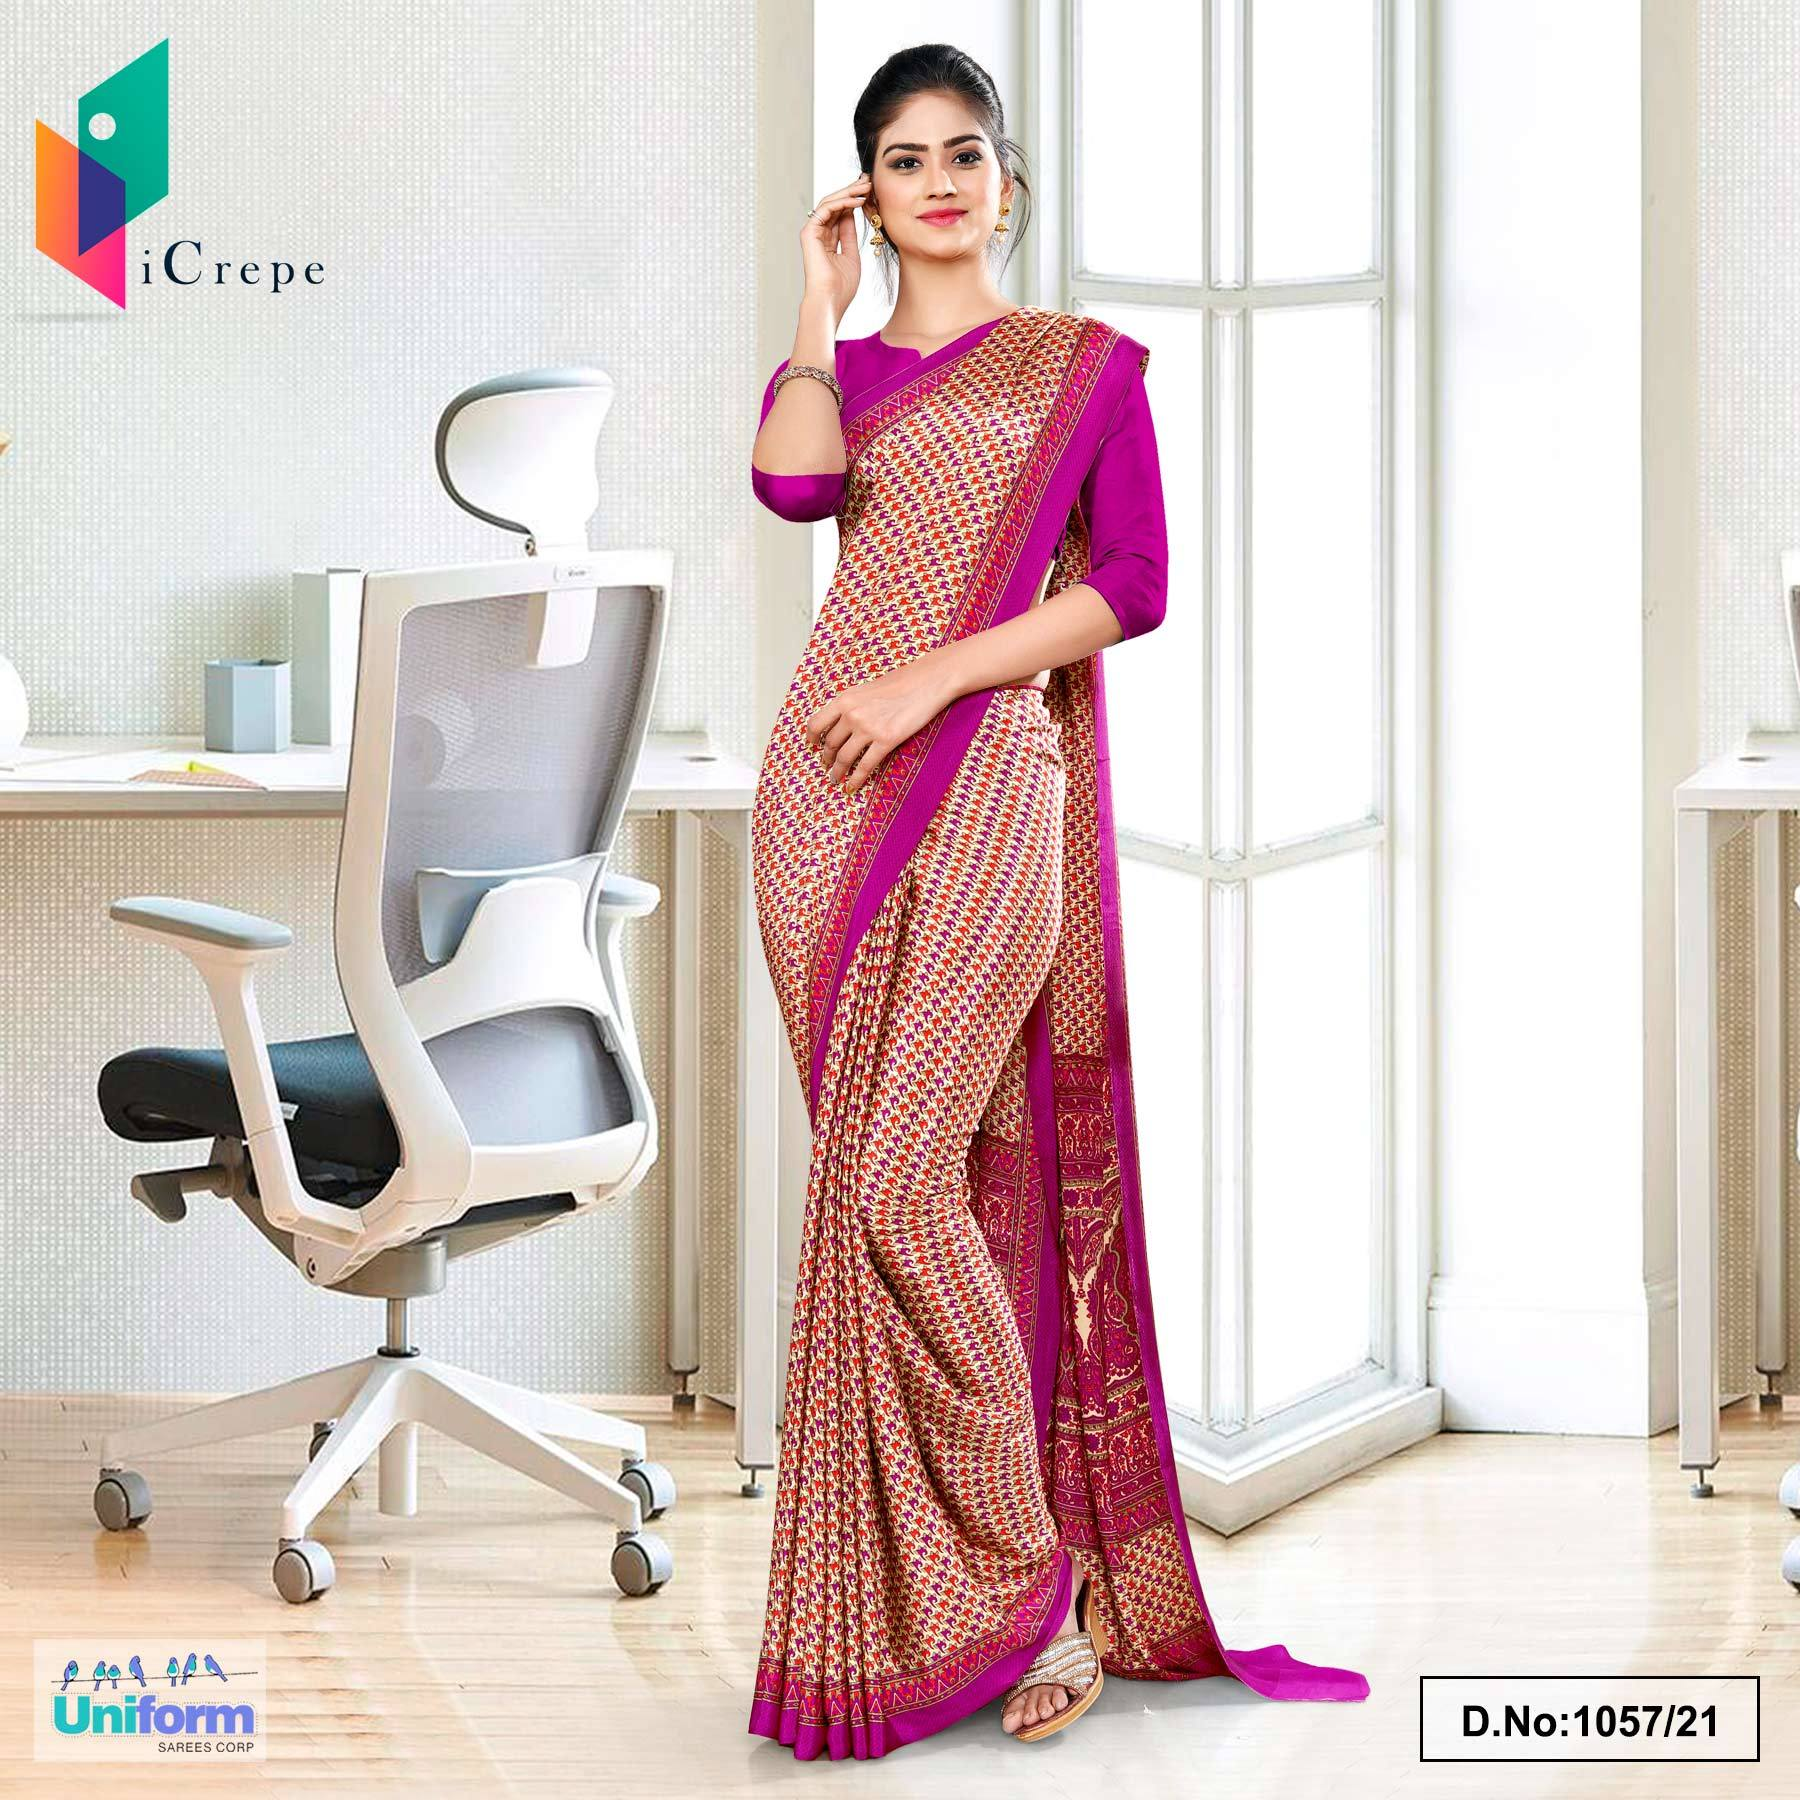 Beige Purple Small Print Premium Italian Silk Crepe Uniform Sarees for Workers